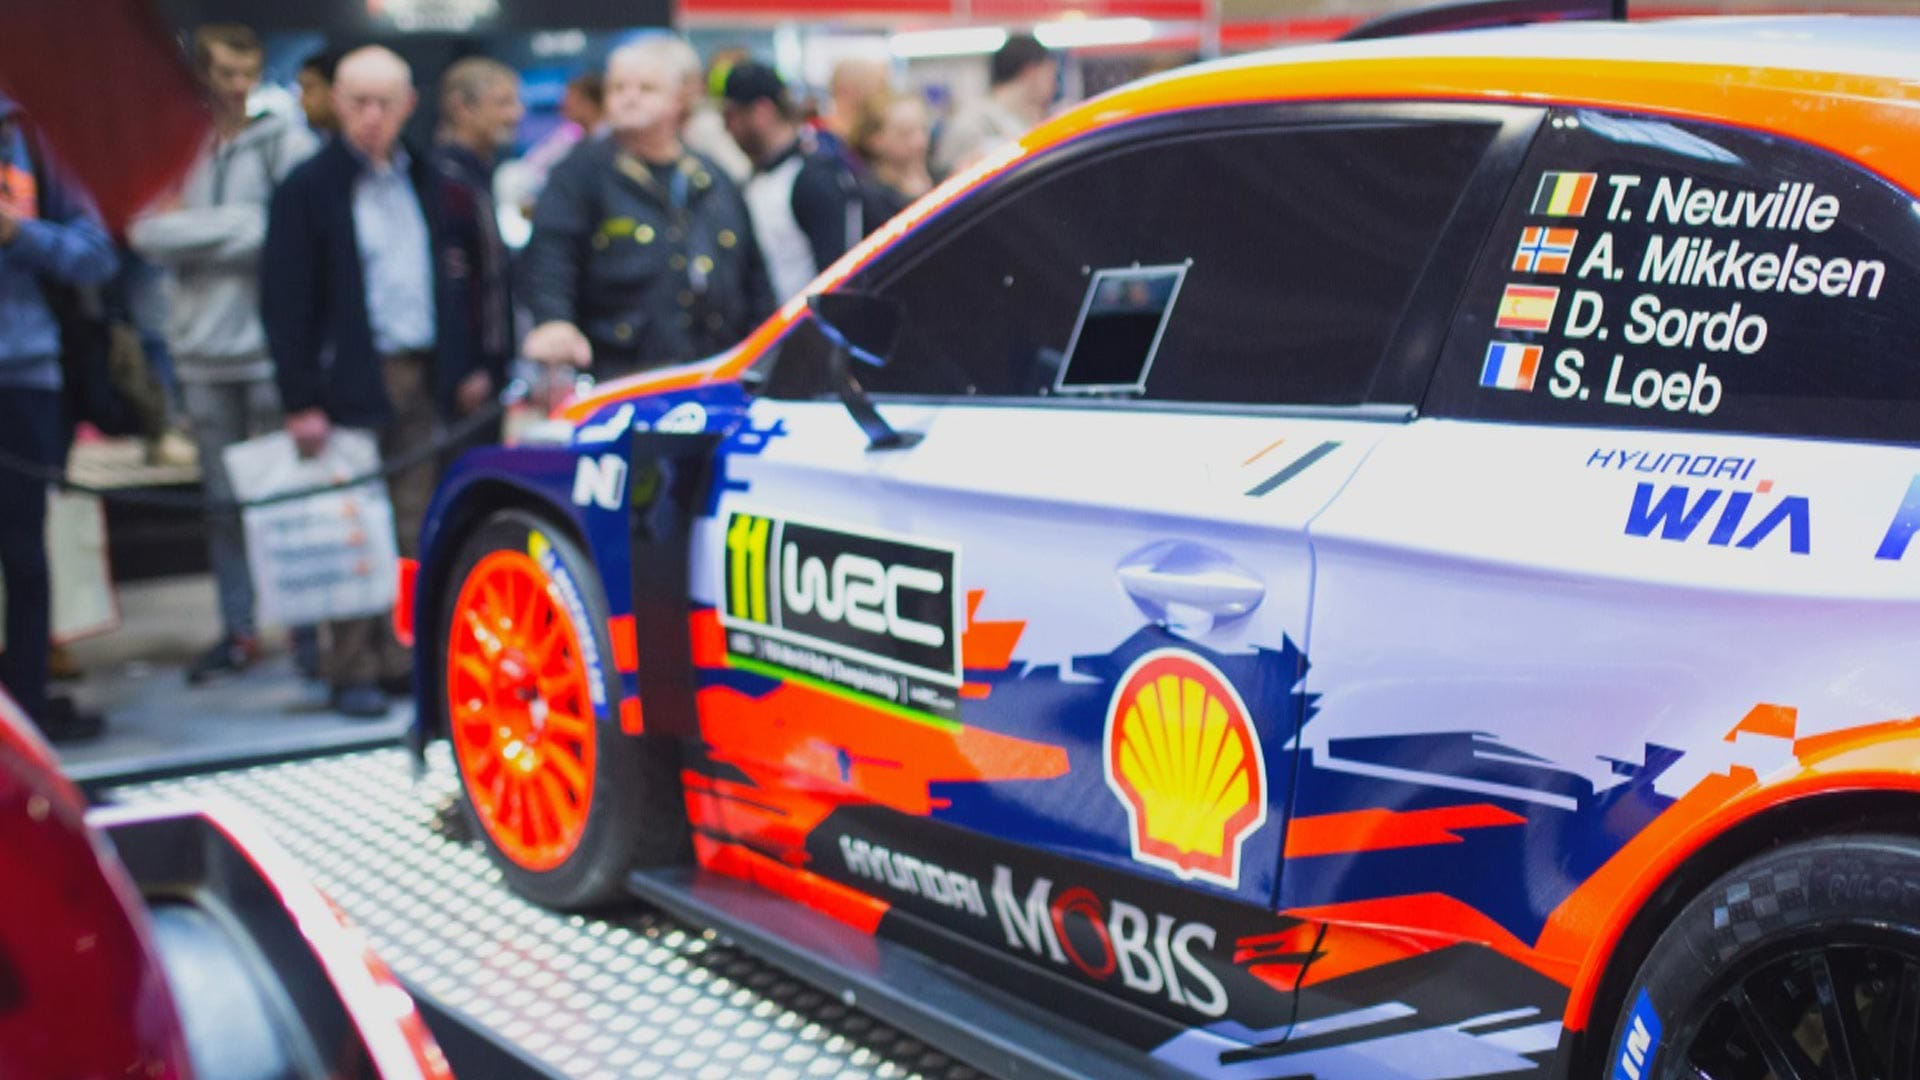 Everything you need to know about Hyundai Motorsport's Sébastien Loeb